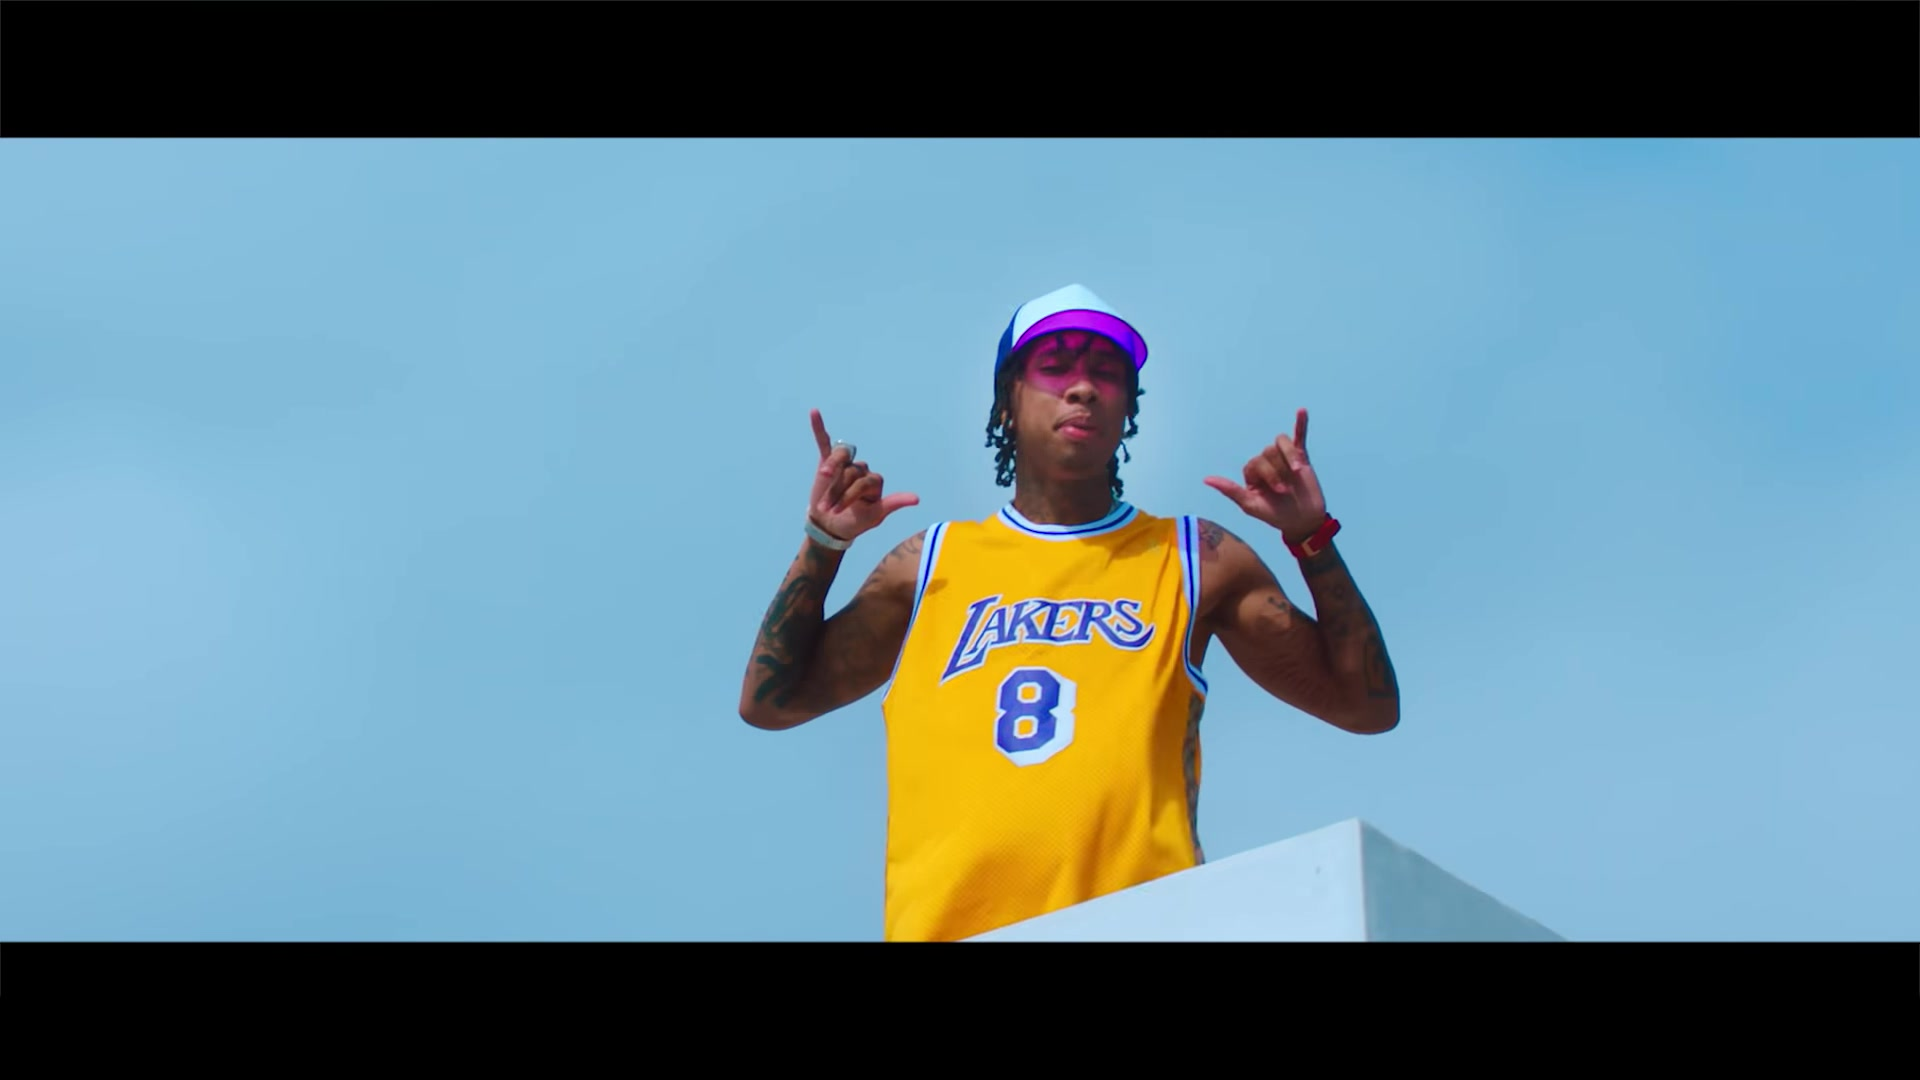 Lakers Jersey In Taste By Tyga Ft Offset 2018